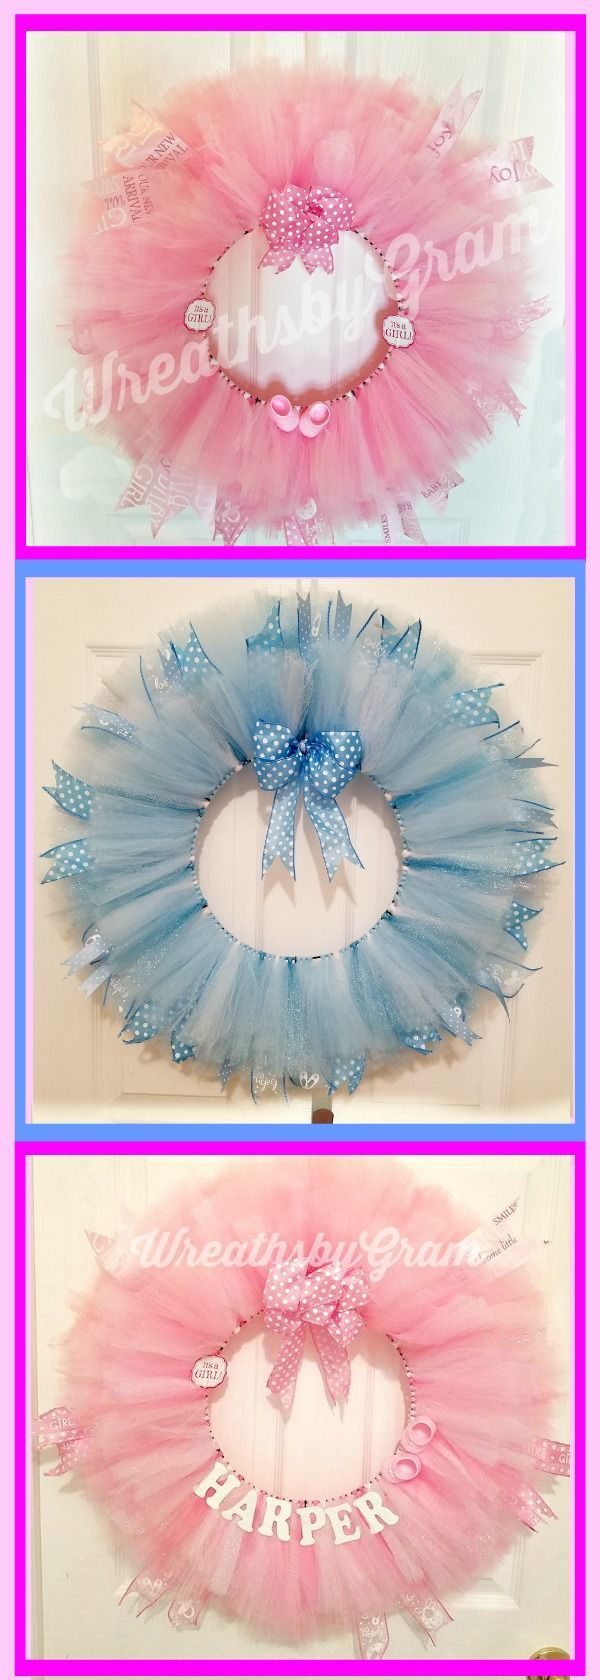 Baby Shower Ideas. Baby Wreath for Hospital Door. Baby Wreath Girl. Baby Wreath Boy. New Baby Gifts. Nursery Wall Decor. Nursery Decor. Pregnancy Announcement. Gender Reveal Ideas. Gender Reveal Party. #baby #babygirl #babyboy #wreaths #nurserydecor #babyshowerdecorations #babyshowerideas4U #babyshowergifts #babywreath #wreathdecor #gifts